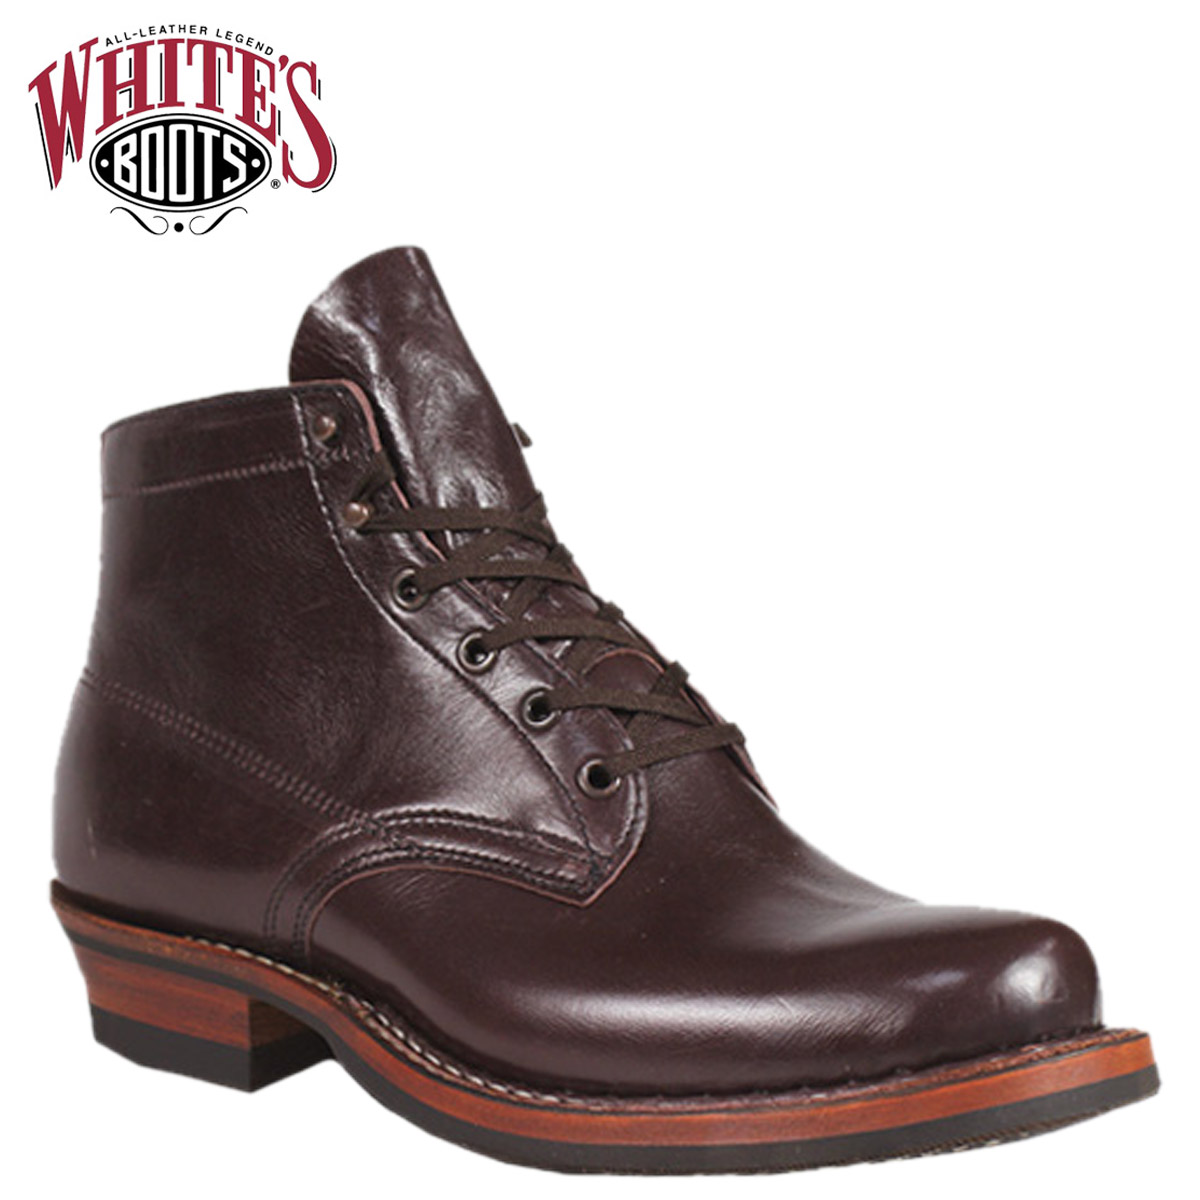 «Booking products» «11 / 7 days stock» whites boots WHITE's BOOTS 5 inch Americana semi boots 2332 W 5inch AMERICANA SEMIDRESS BOOTS E wise BLACK CHERRY WATER BUFFALO mens